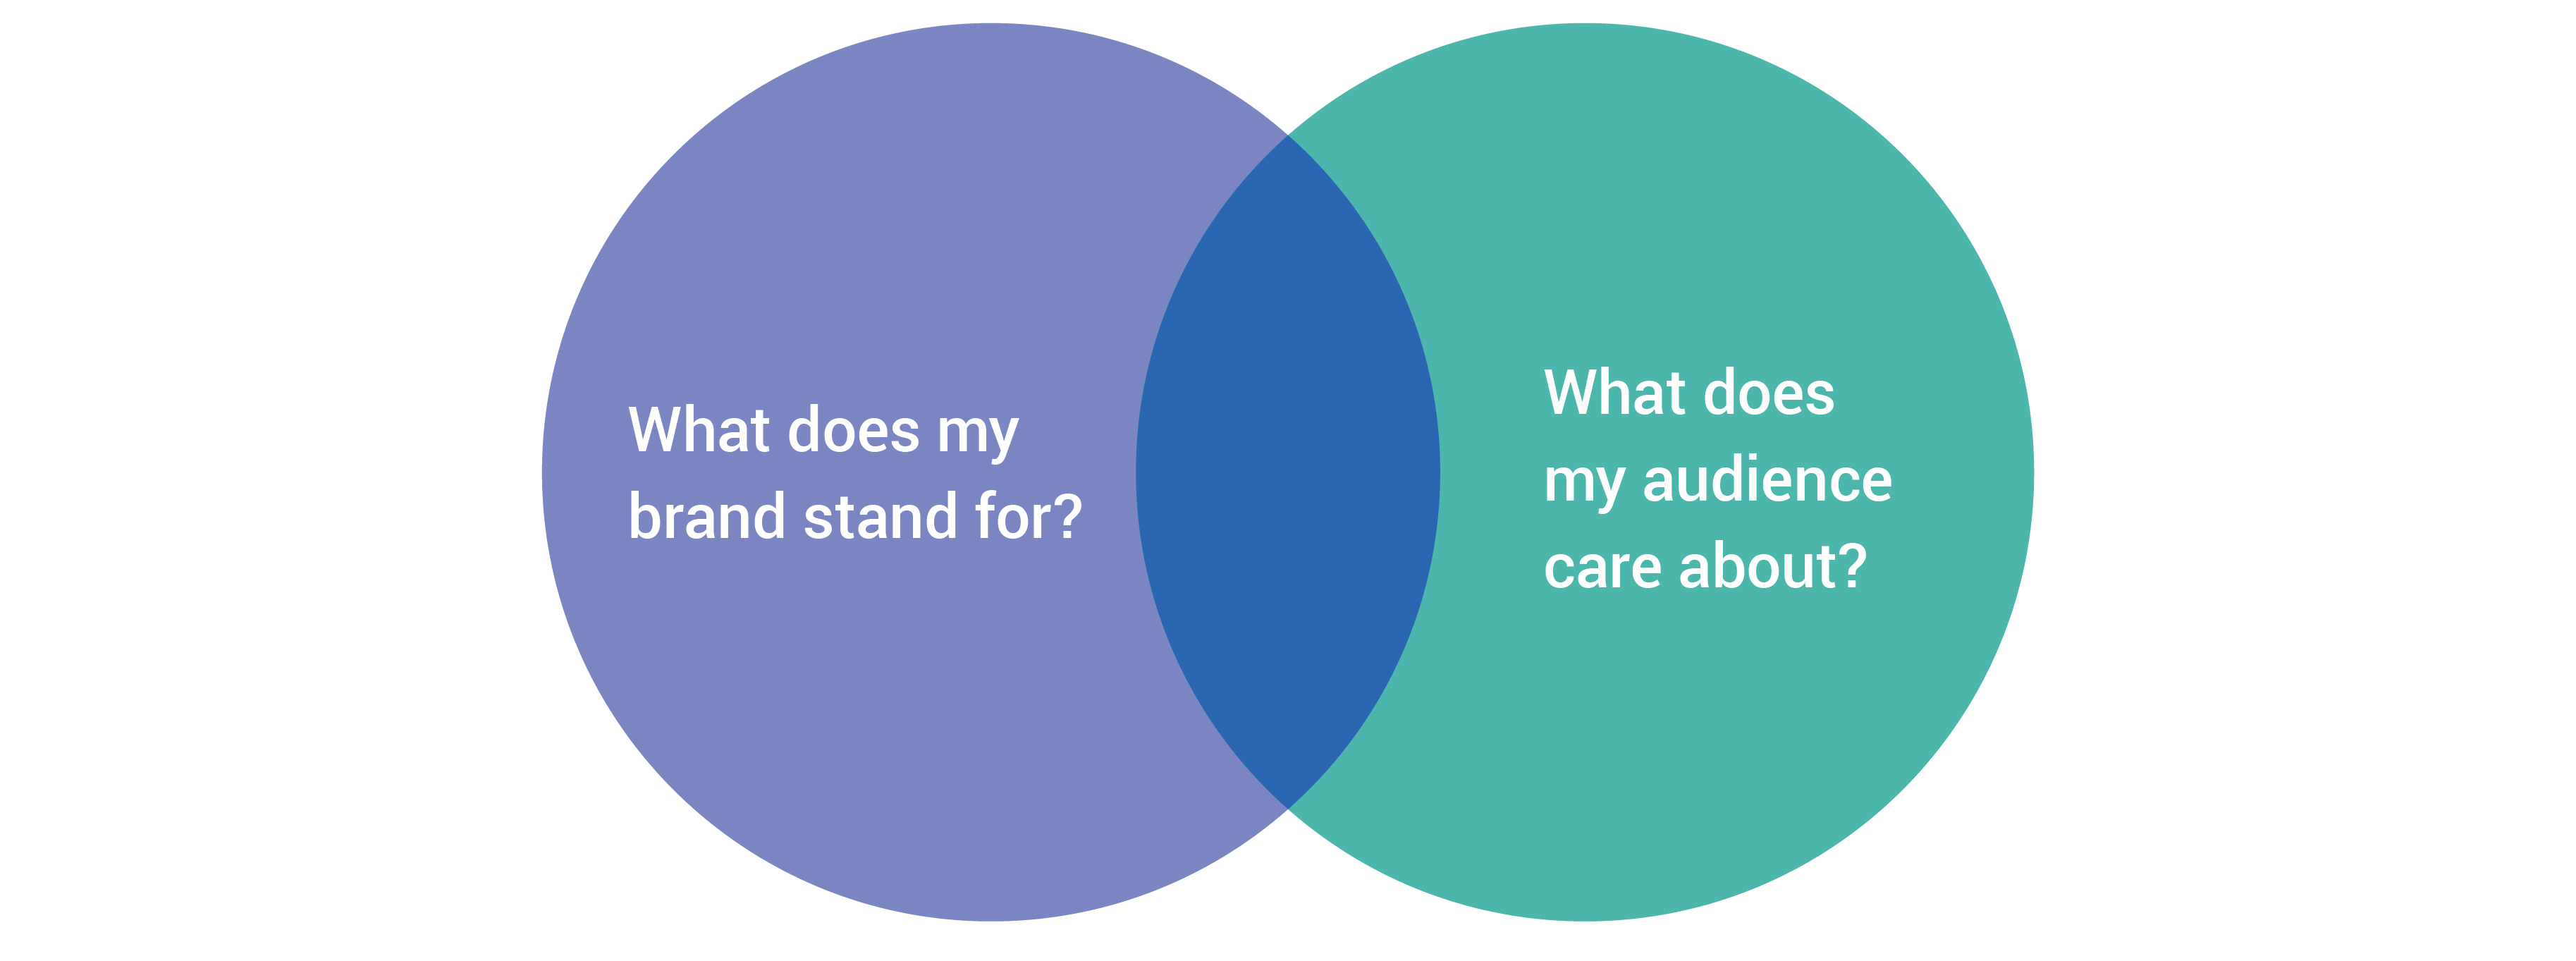 what-brands-stand-for-what-audiences-care-about-venn-diagram